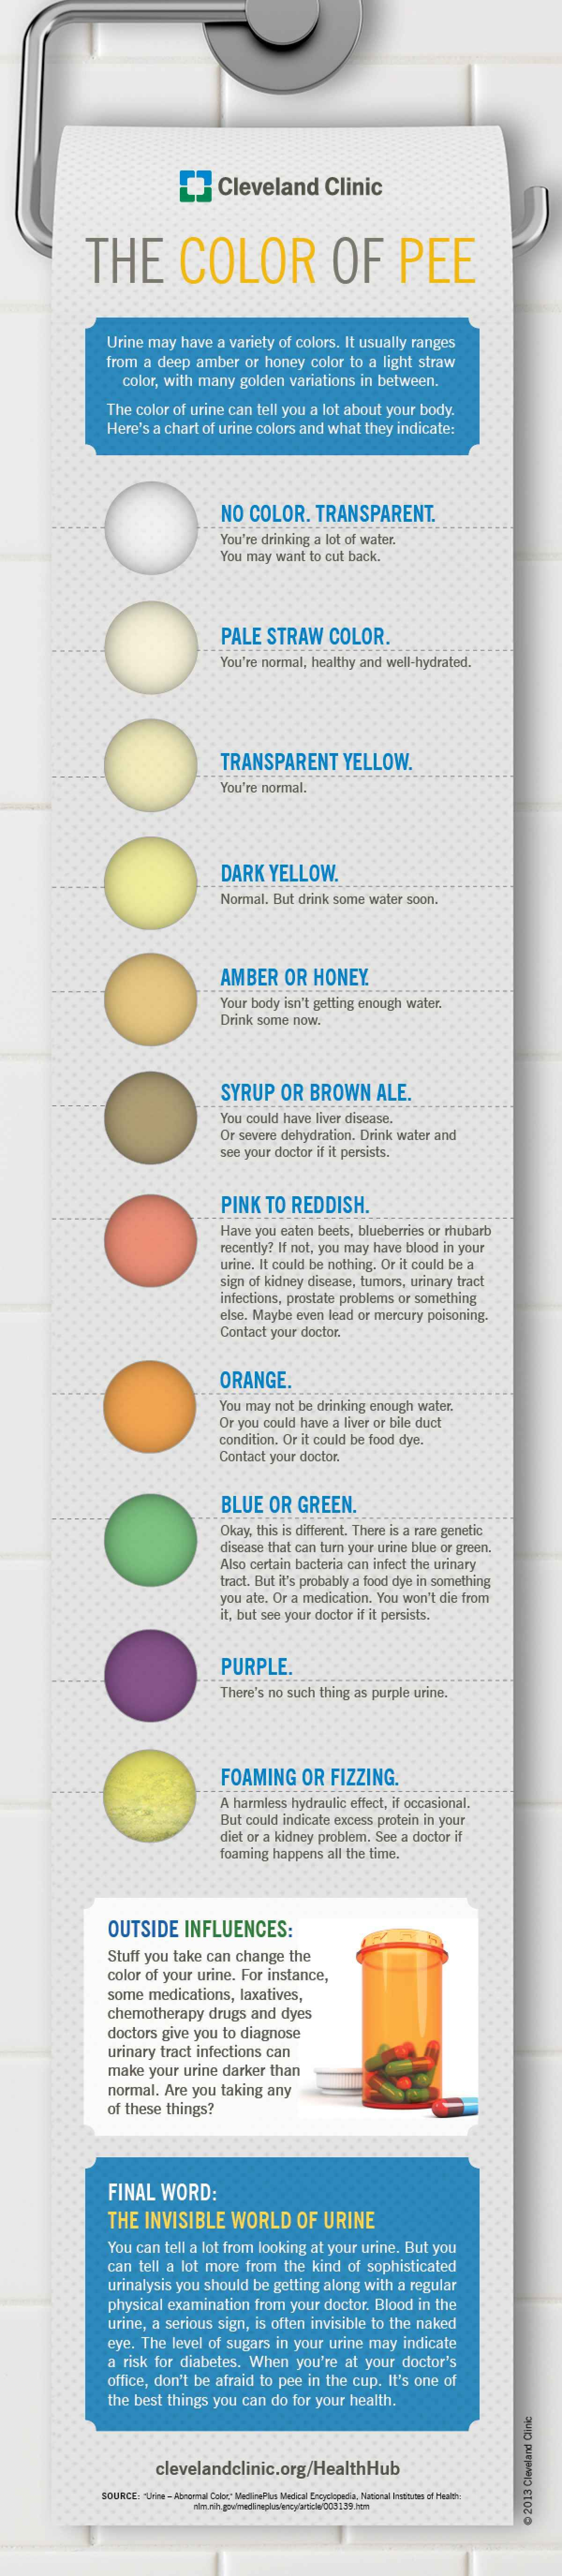 What The Color of Your Urine Says About Your Health | #infographic #healthcare #health